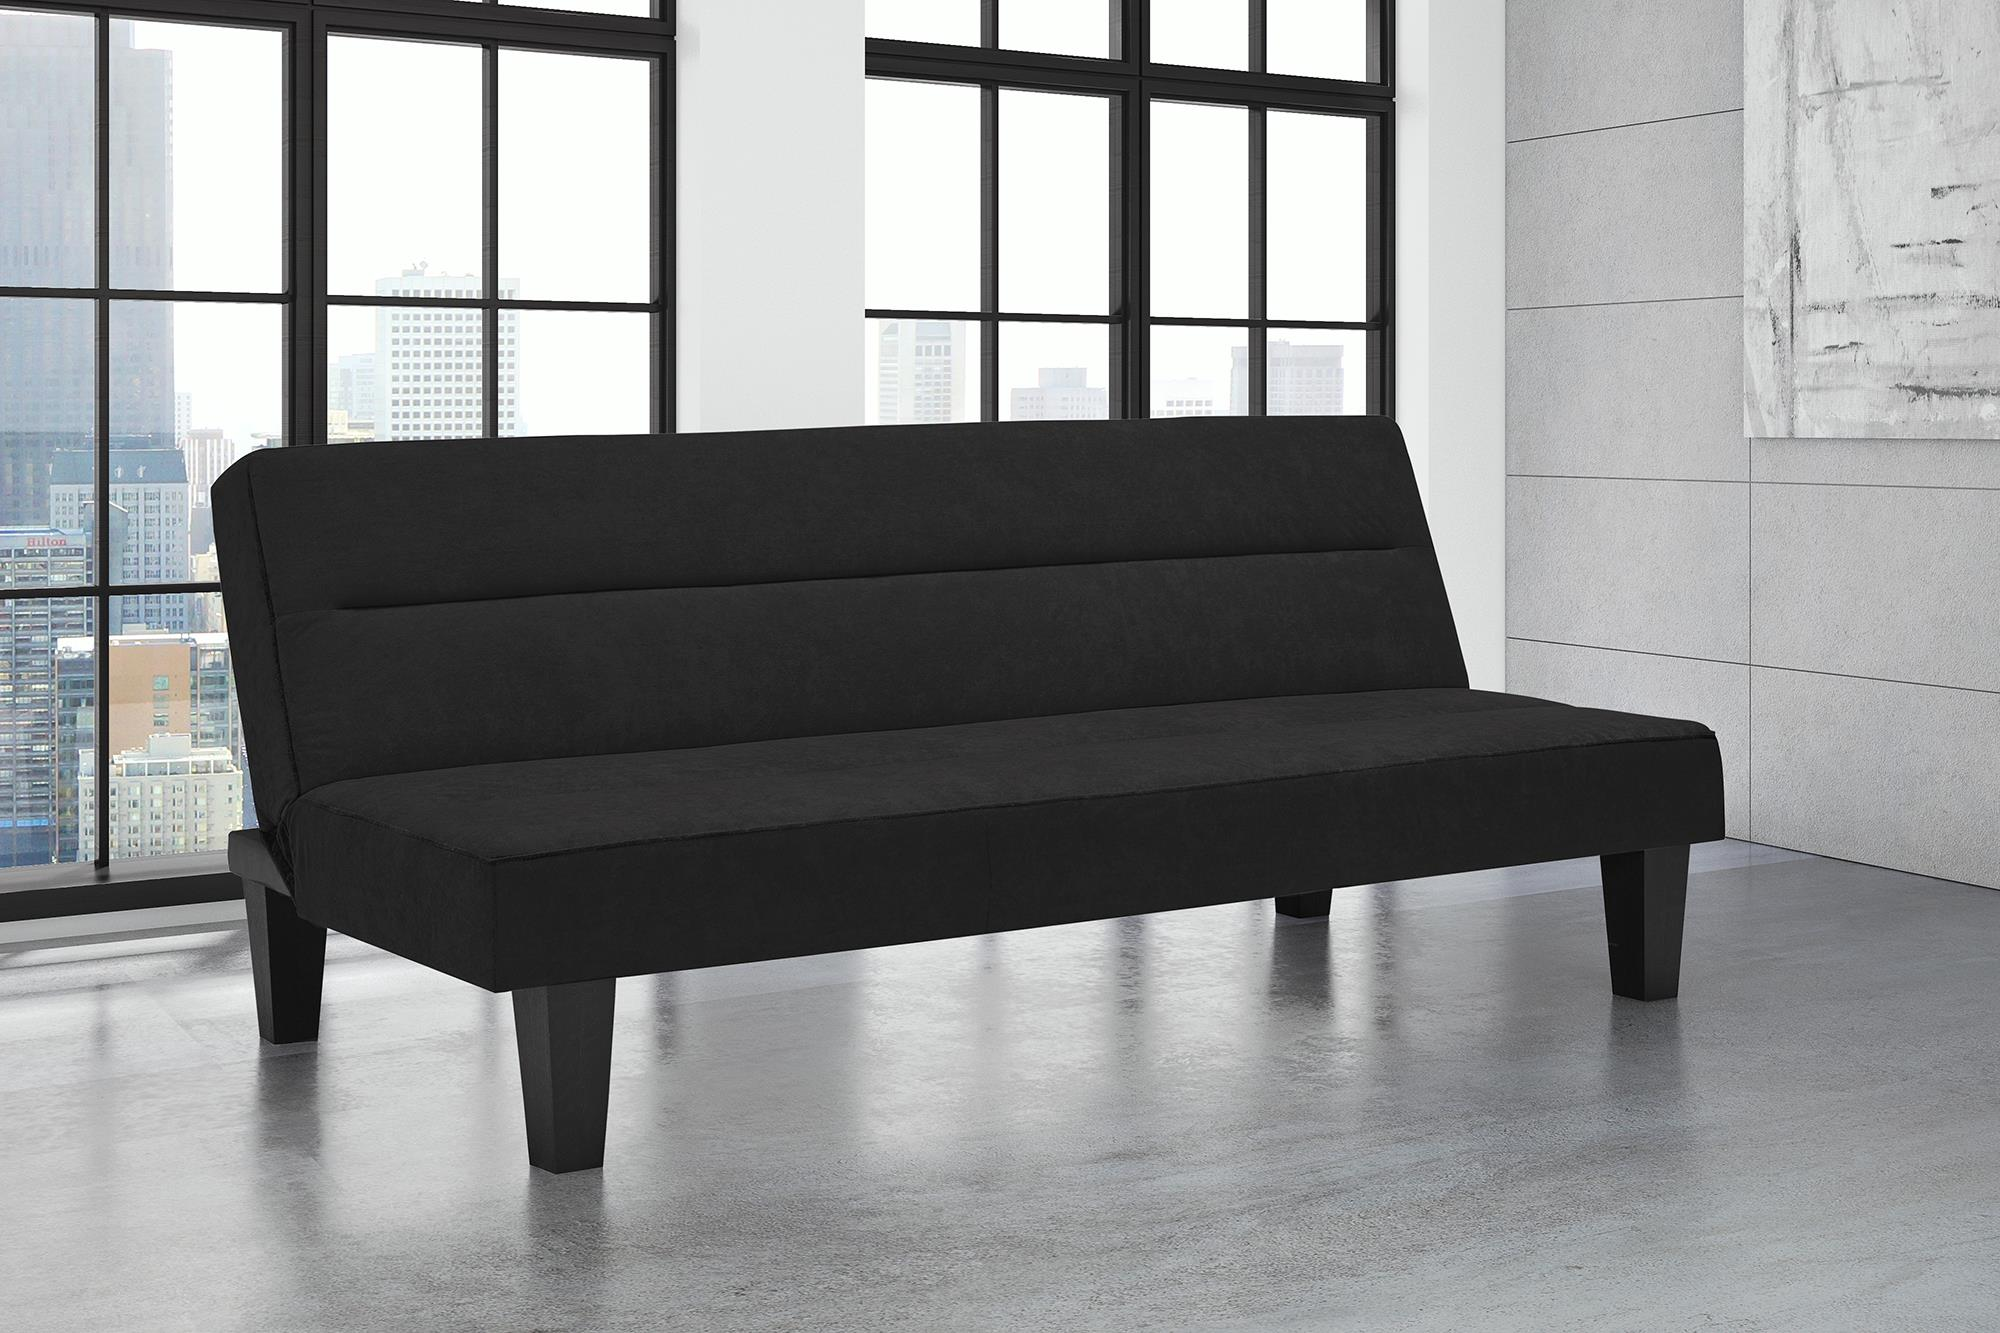 Kebo Futon Sofa Bed Multiple Colors Ebay